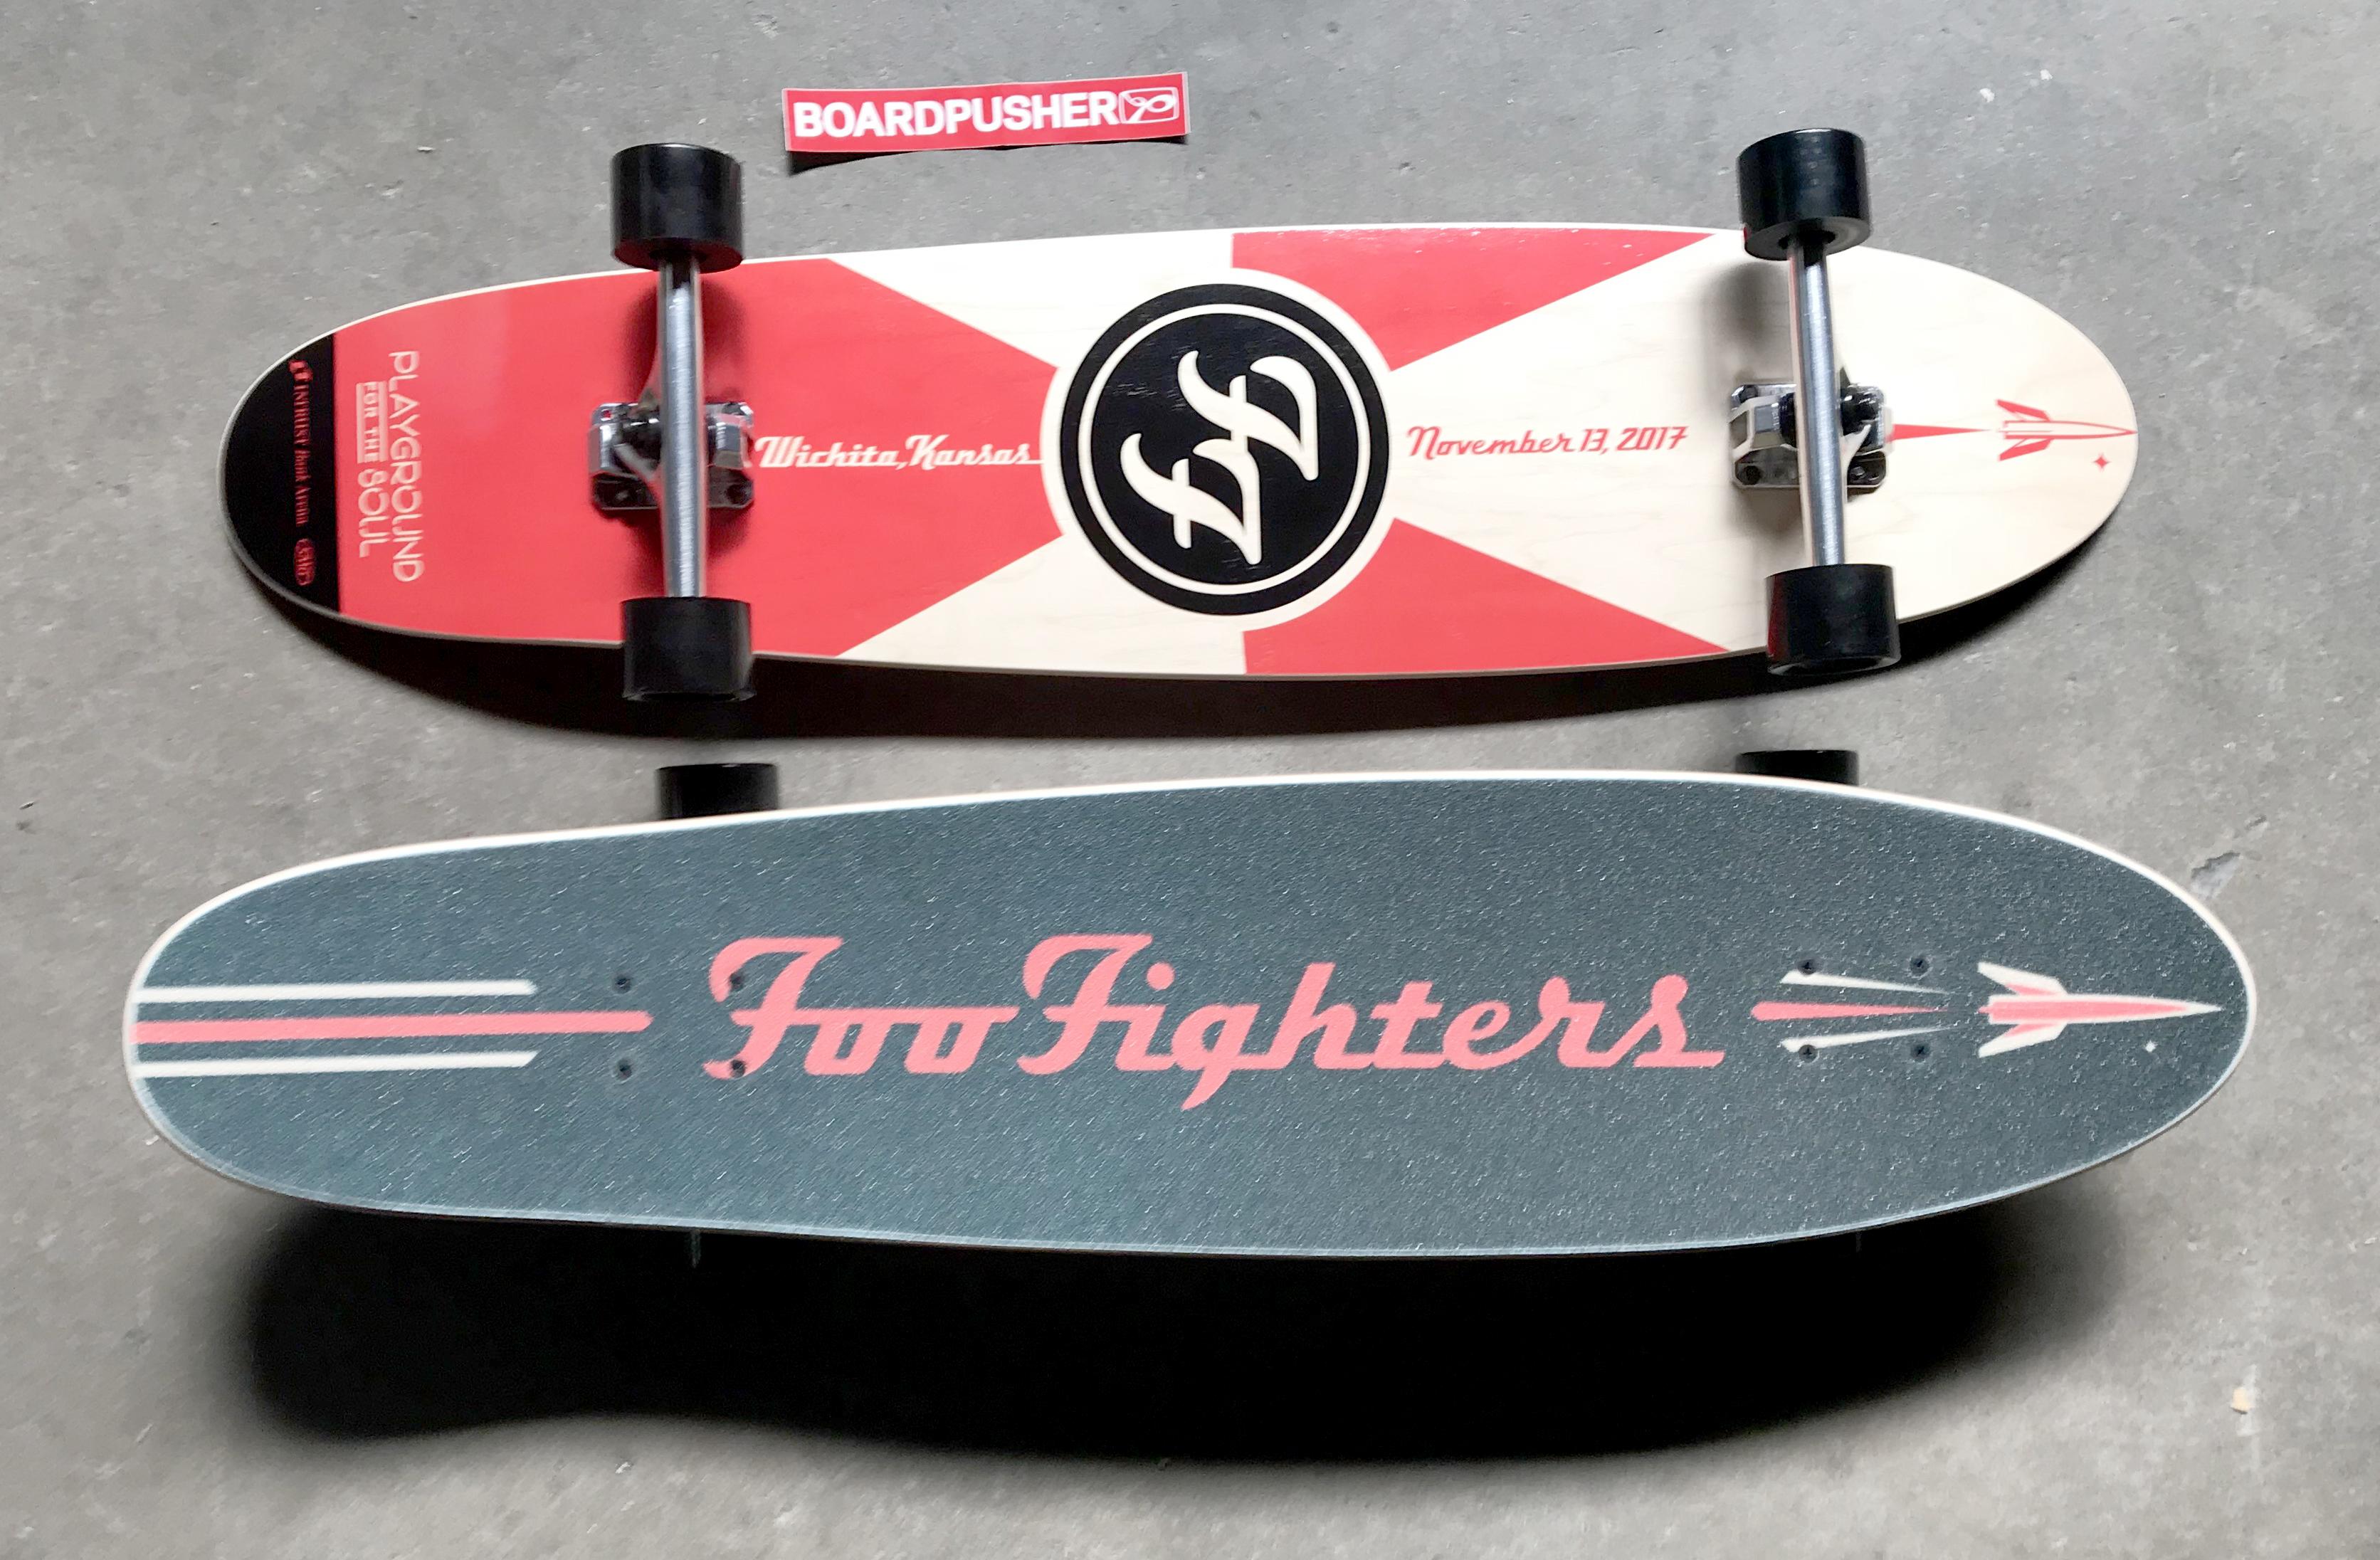 Featured Deck and Grip of the Day: Foo Fighters Longboard by INTRUST